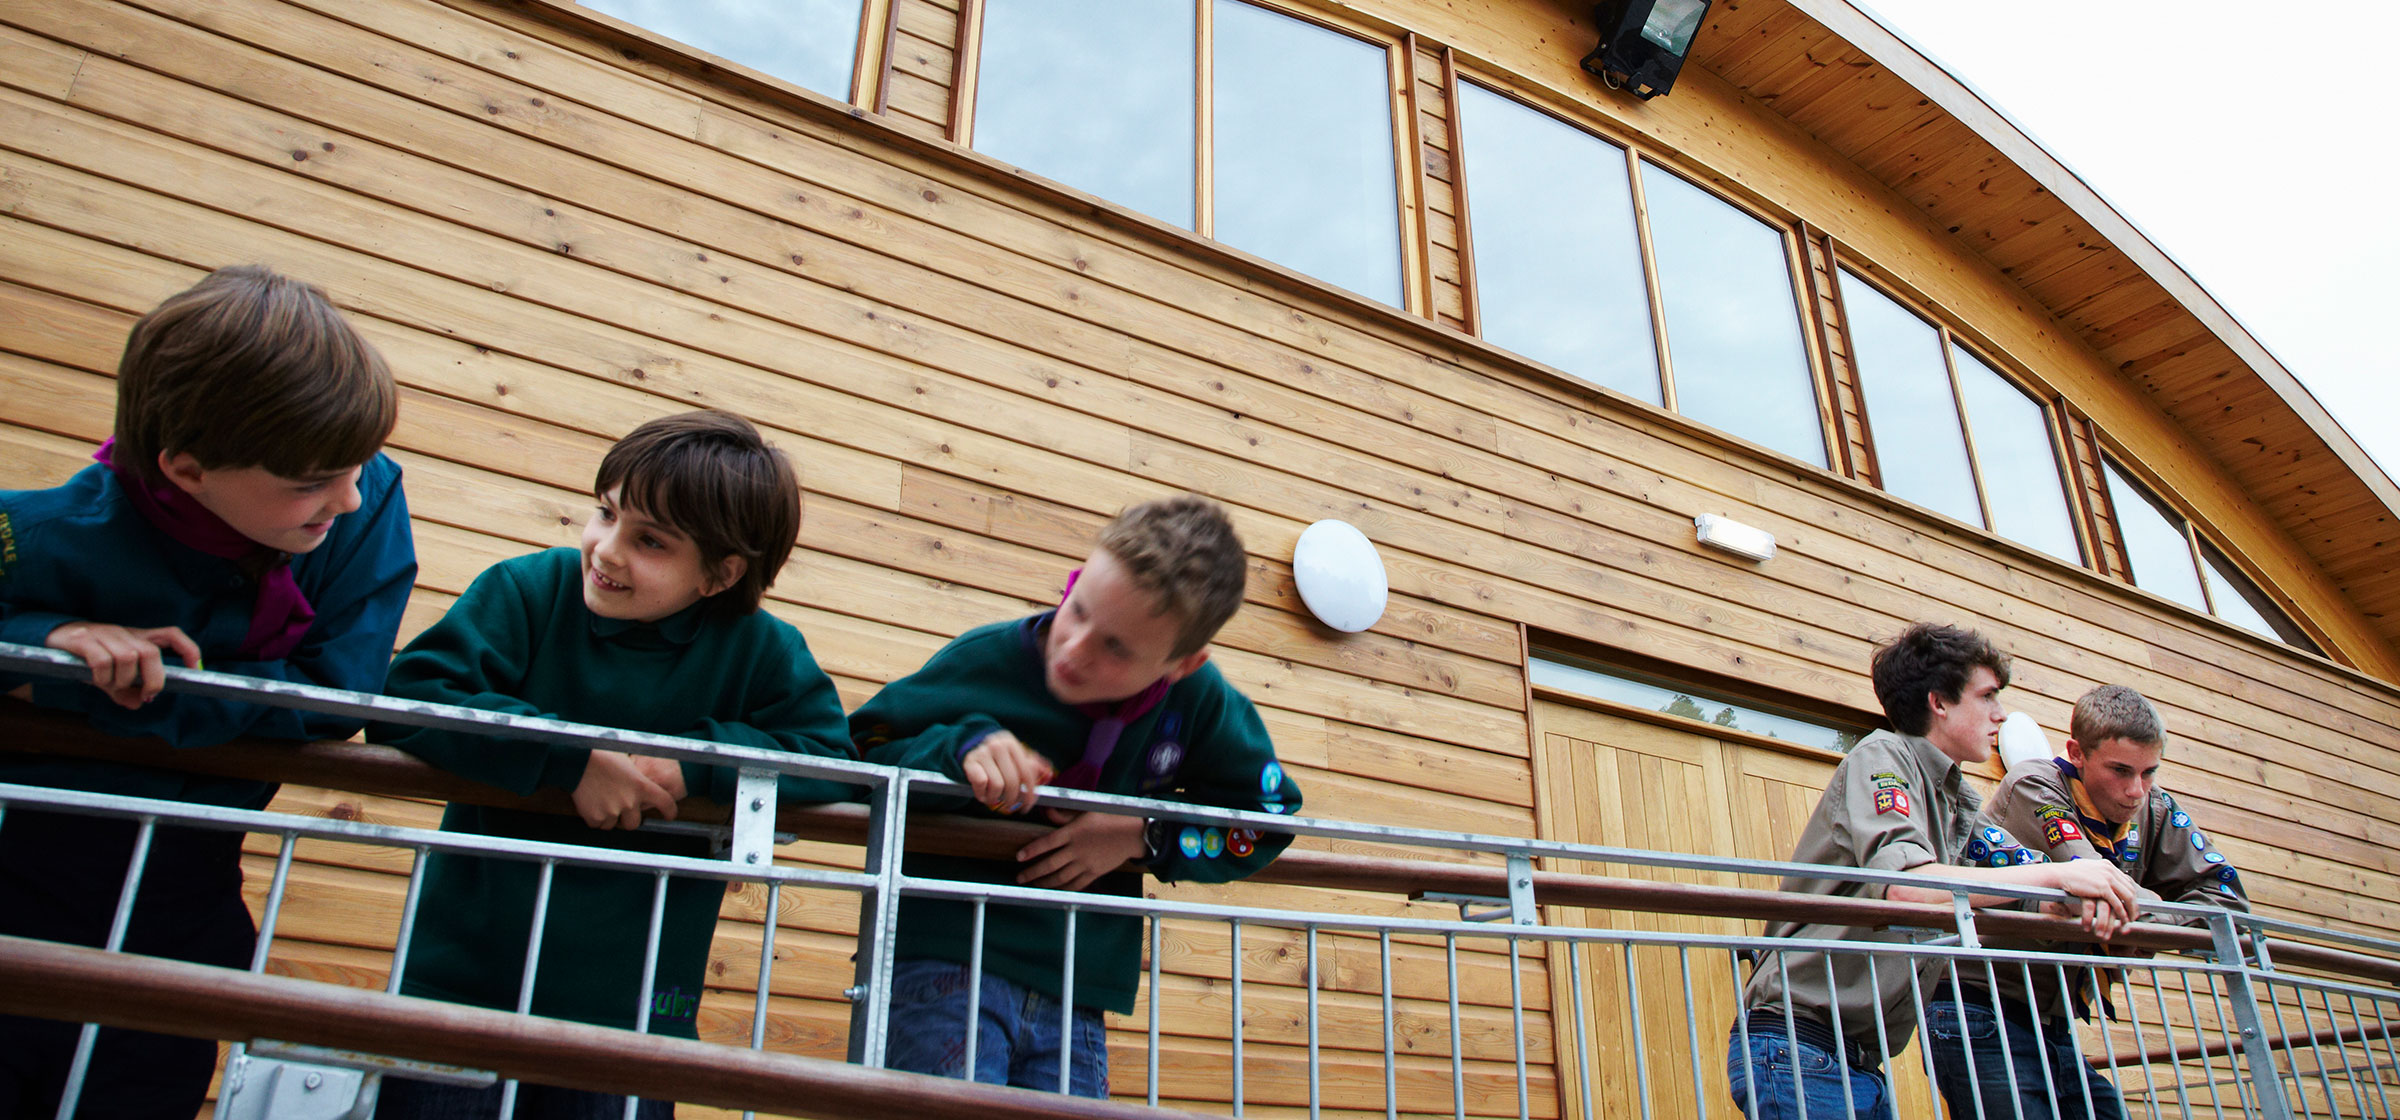 Bedale Scouts HQ - The large new activity hall for the Scouts, Guides and local community